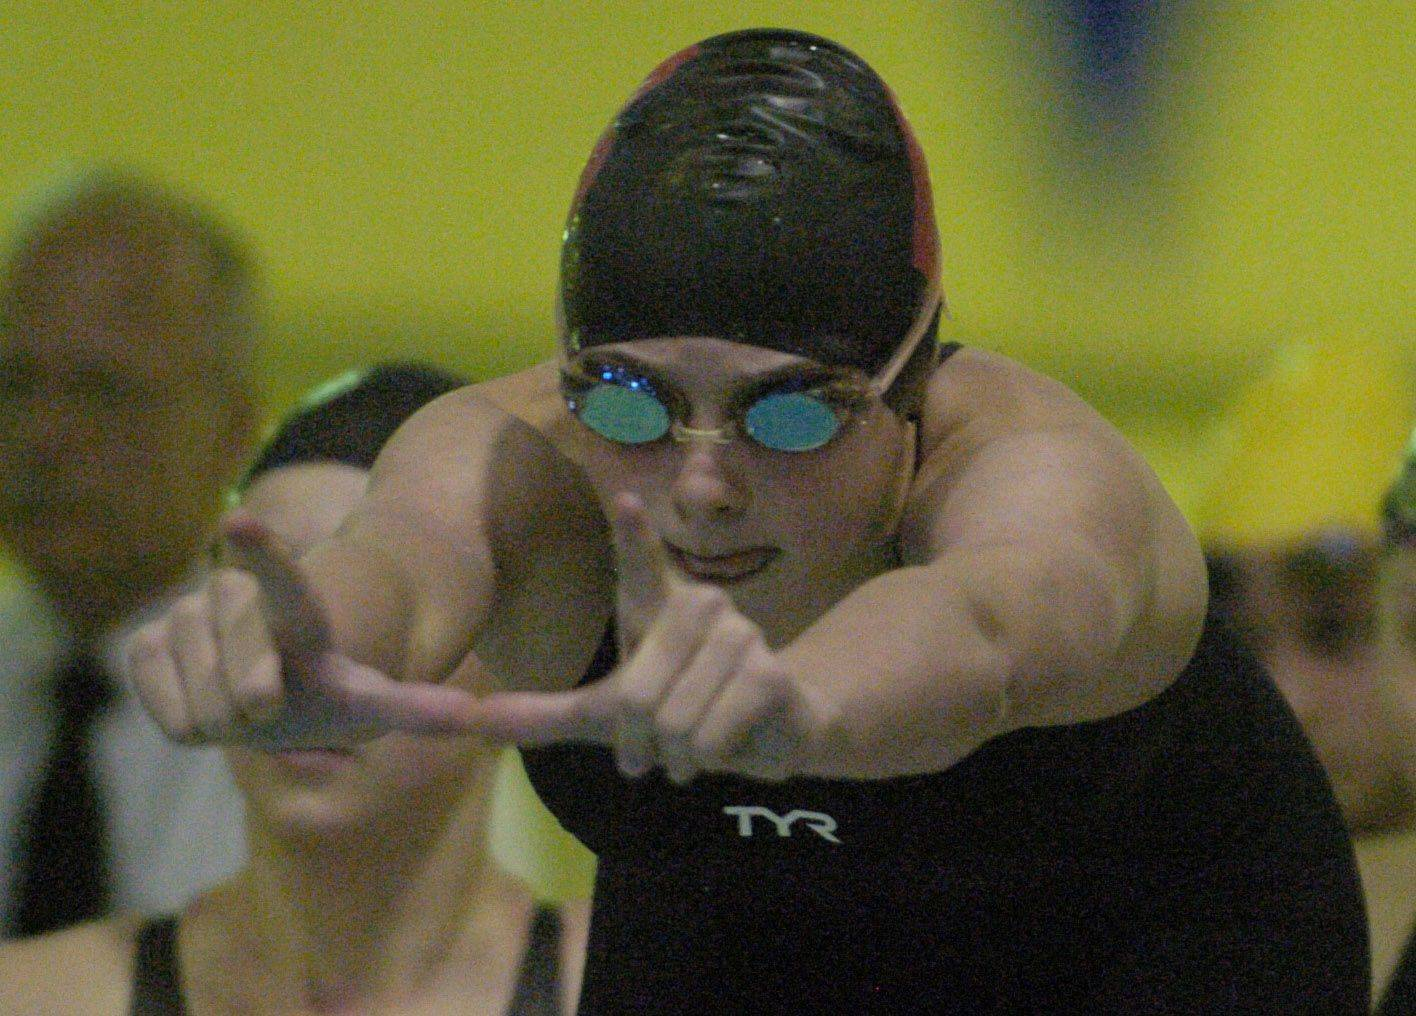 Barrington's Mekenna Scheitlin sets her sights on teammate Kate Valentine during the 200-yard freestyle relay of Saturday's state swimming finals at Evanston.